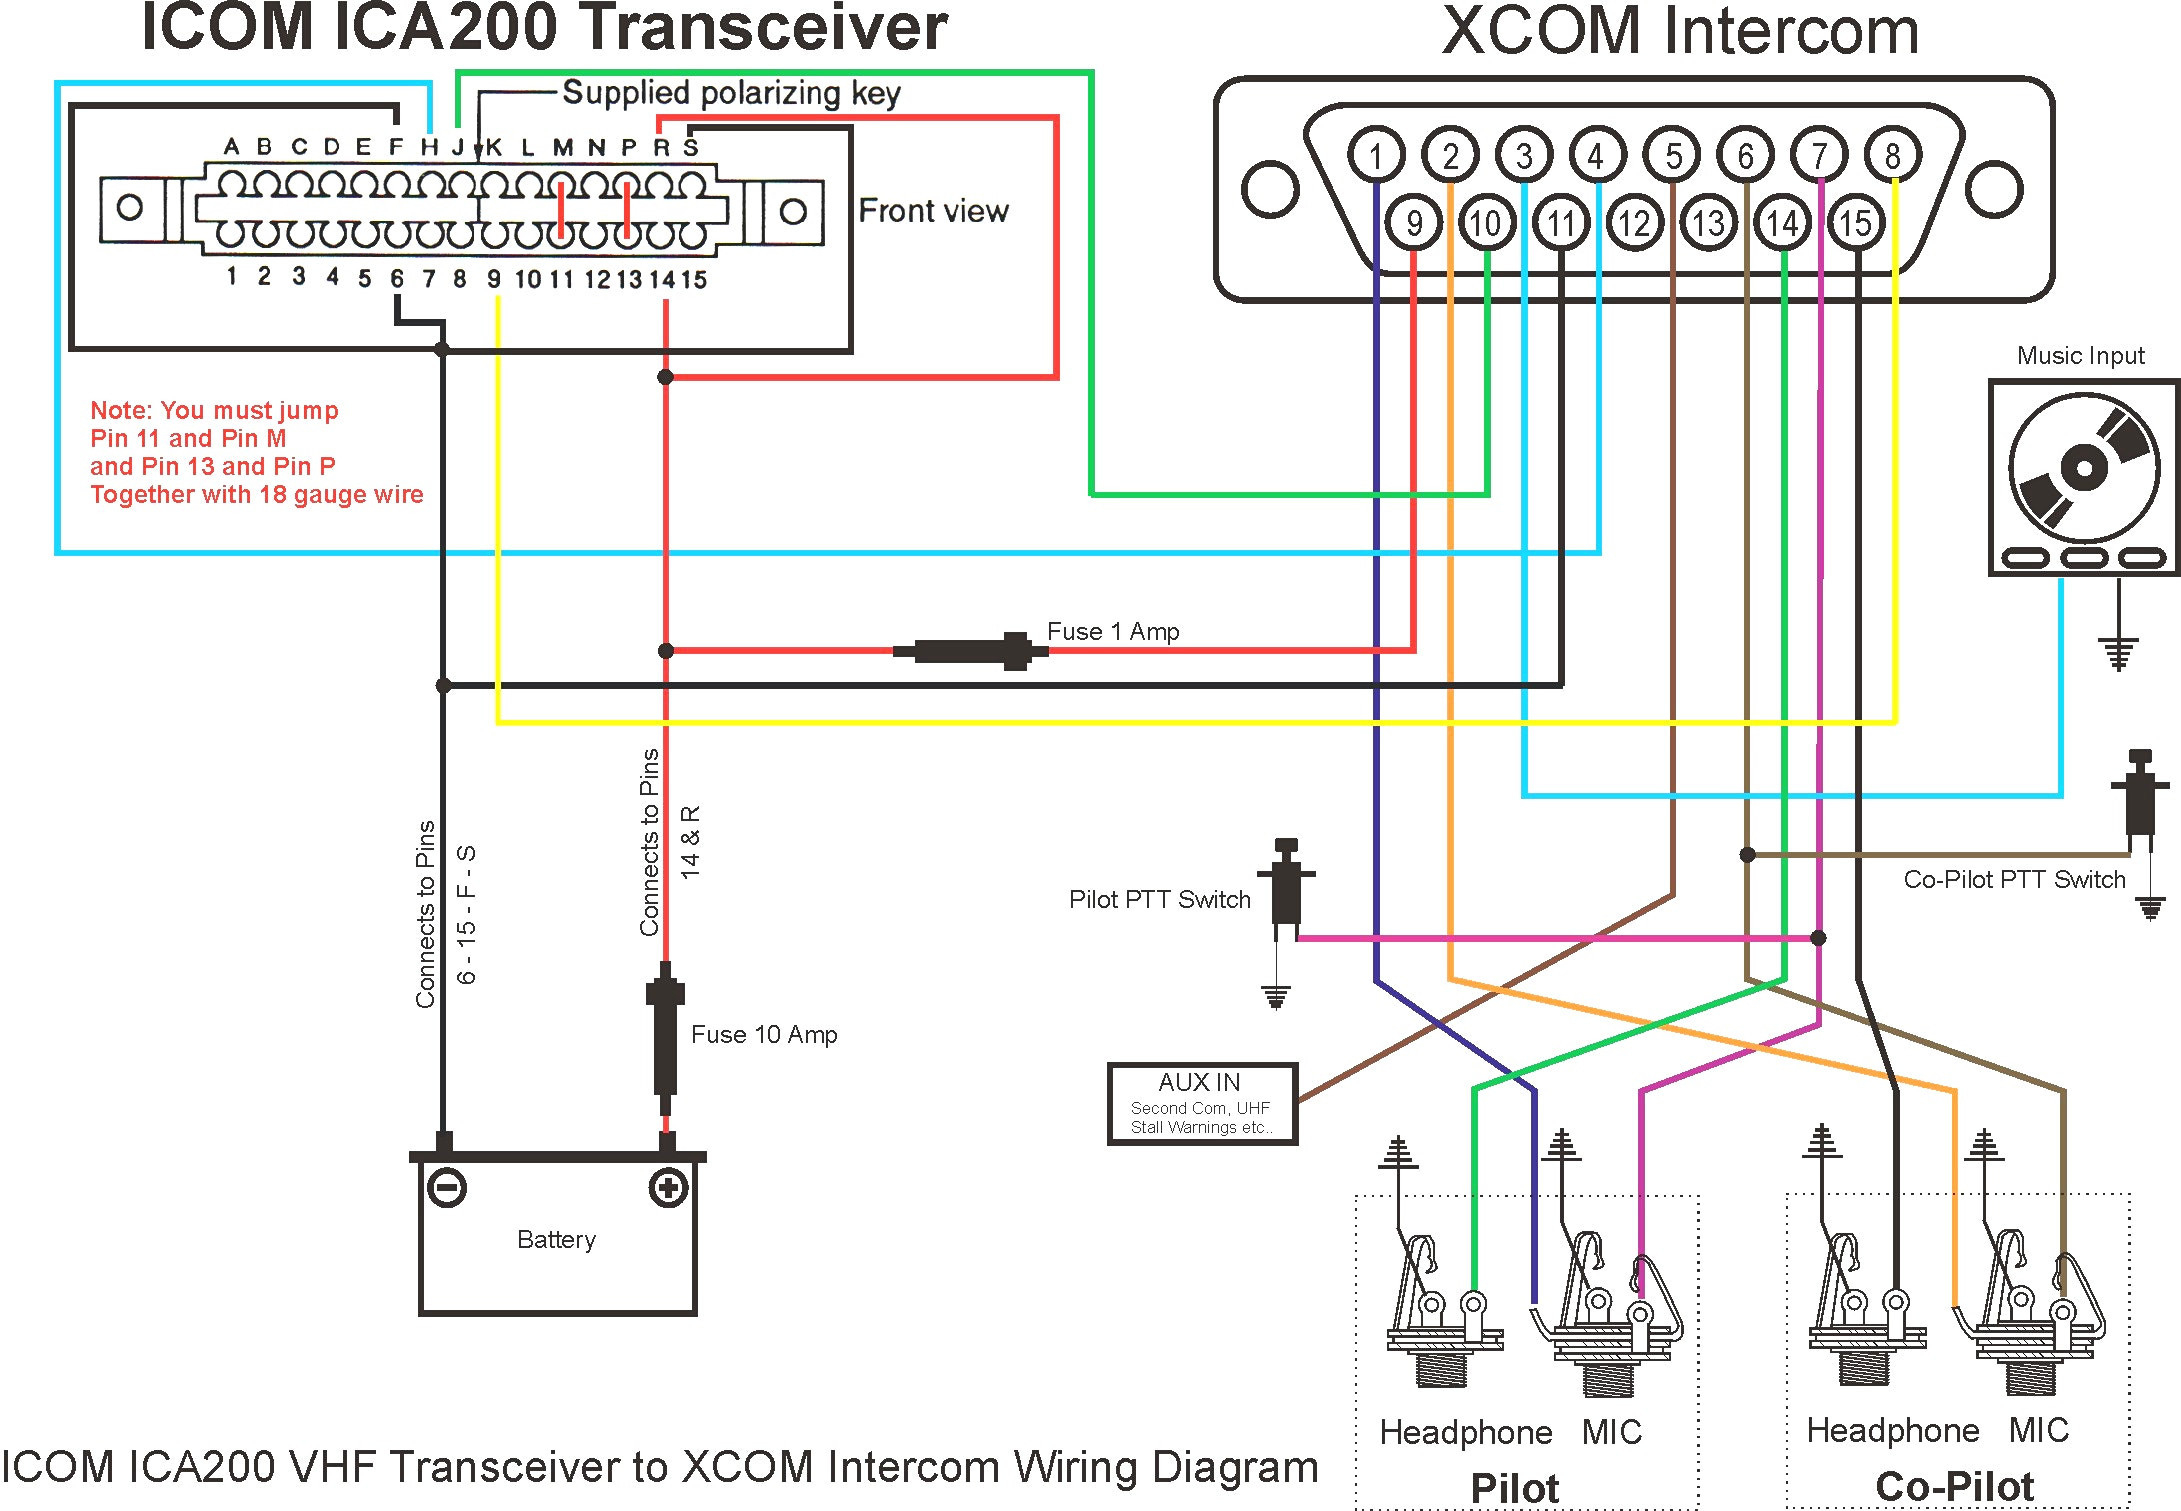 push to talk switch wiring diagram Collection-Push To Talk Switch Wiring Diagram WIRE Center • 10-r